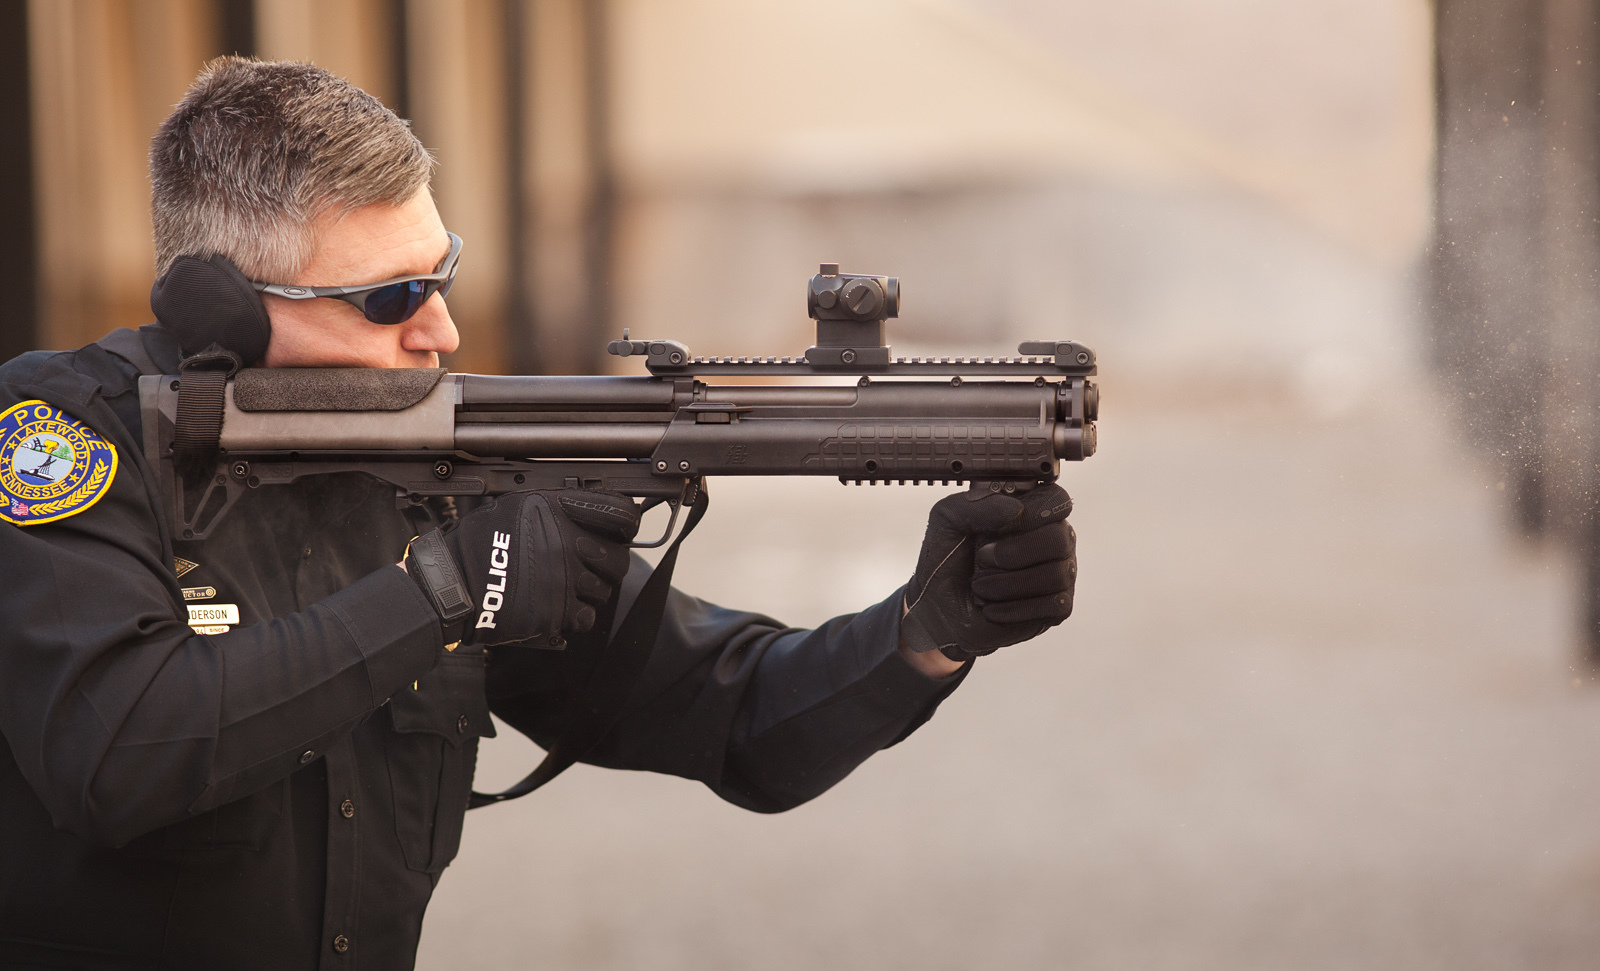 Kel Tec KSG Shotgun Police Oleg Volk 2 <!  :en  >Kel Tec KSG Shotgun: 15 Round (14+1) Bullpup Pump Action 12 Gauge Combat Shotgun for Urban Tactical Operations and Applications (Photos and Video!)<!  :  >